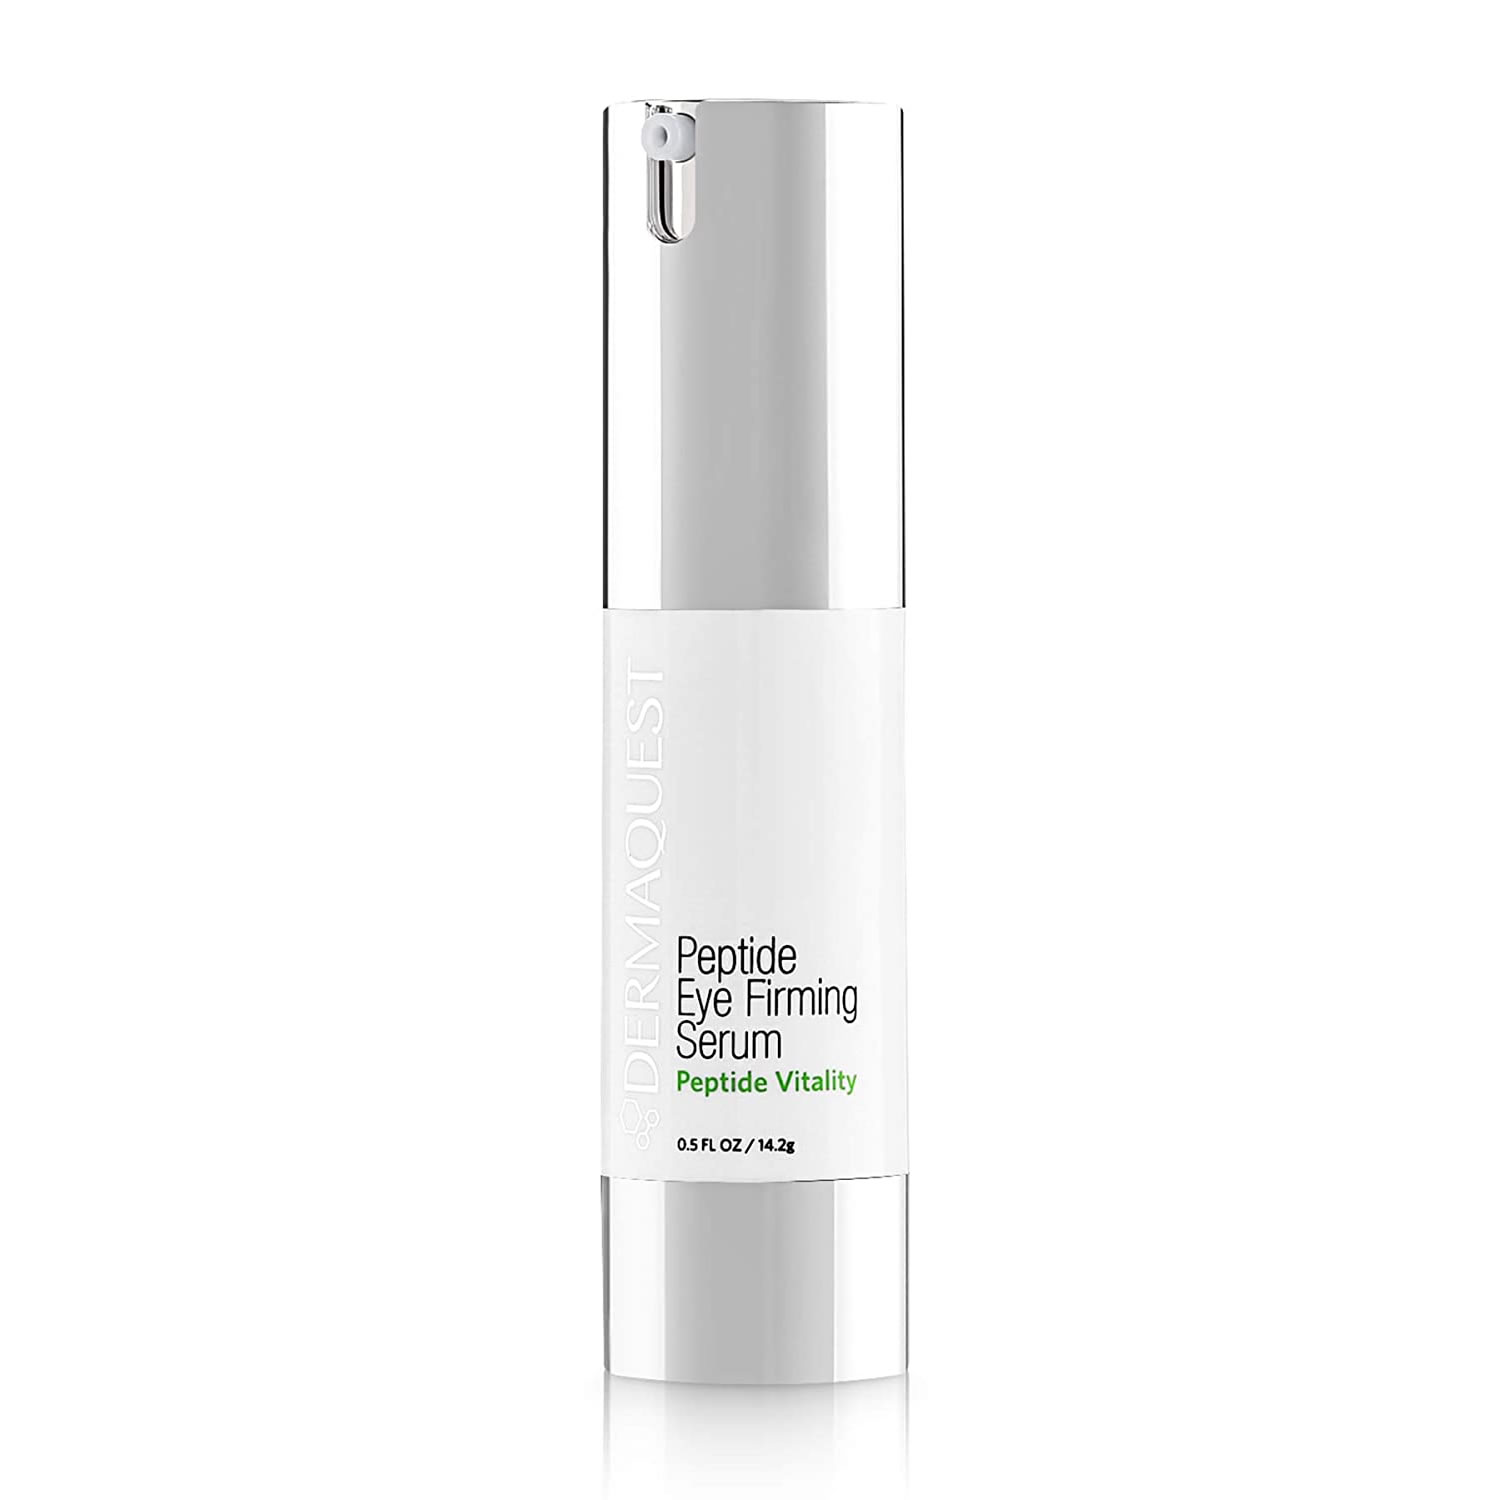 DermaQuest Peptide Eye Firming Serum (0.5 fl oz / 14.8 ml)